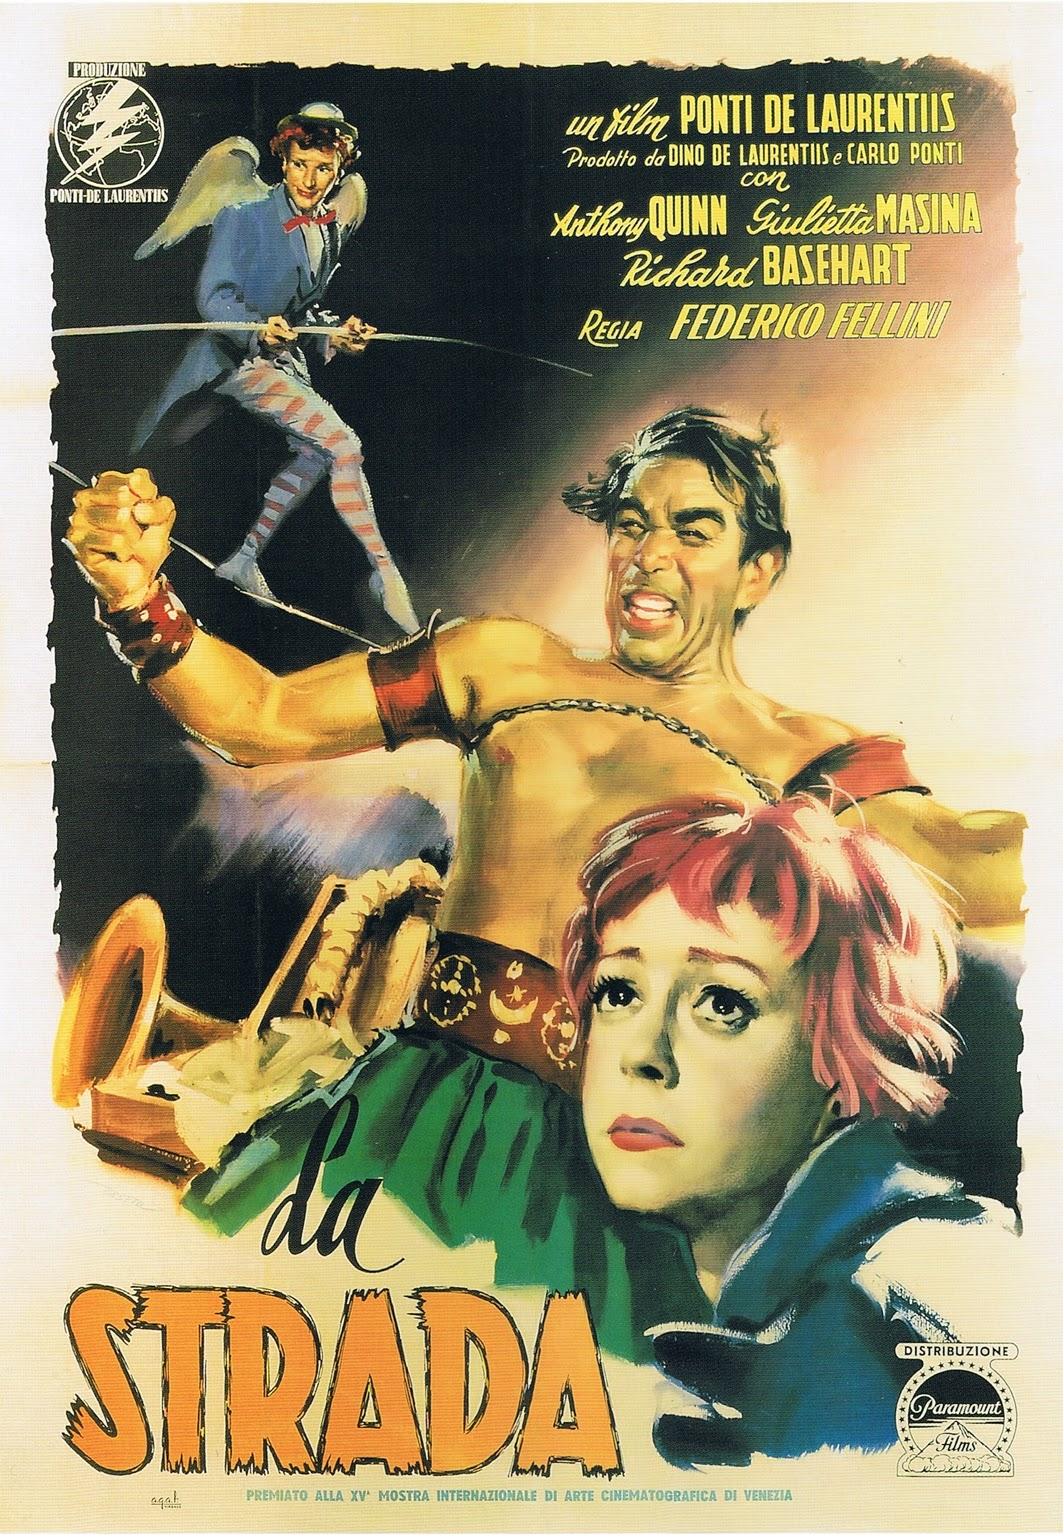 La Strada (1954) - Directed by: Federico FelliniStarring: Anthony Quinn, Giulietta Masina, Richard BasehartRated: NR (Suggested PG-13 for Suggestive Content and Brief Violence)Running Time: 1 h 48 mTMM Score: 4.5 stars out of 5STRENGTHS: Writing, Directing, ActingWEAKNESSES: -